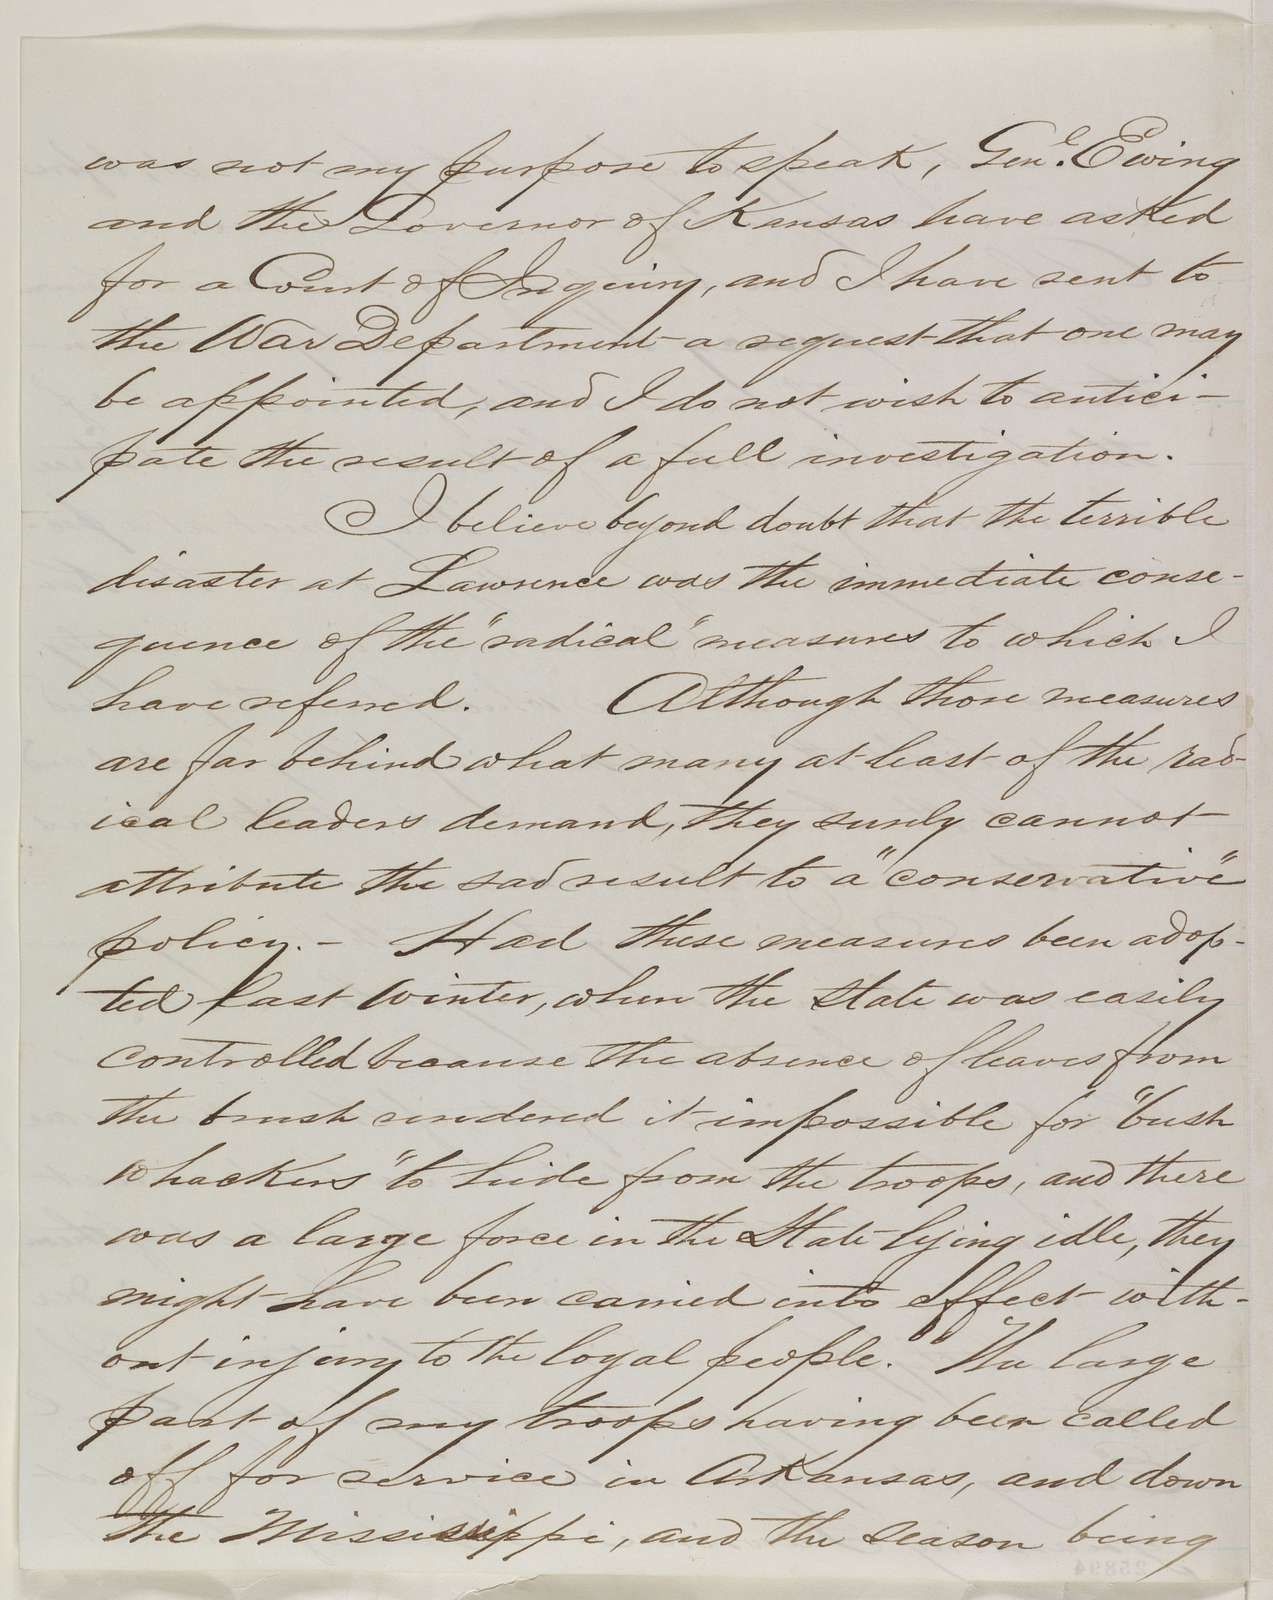 Abraham Lincoln papers: Series 1. General Correspondence. 1833-1916: John M. Schofield to Abraham Lincoln, Friday, August 28, 1863 (Reply to Lincoln's telegram of August 27 regarding the massacre at Lawrence, Kansas)